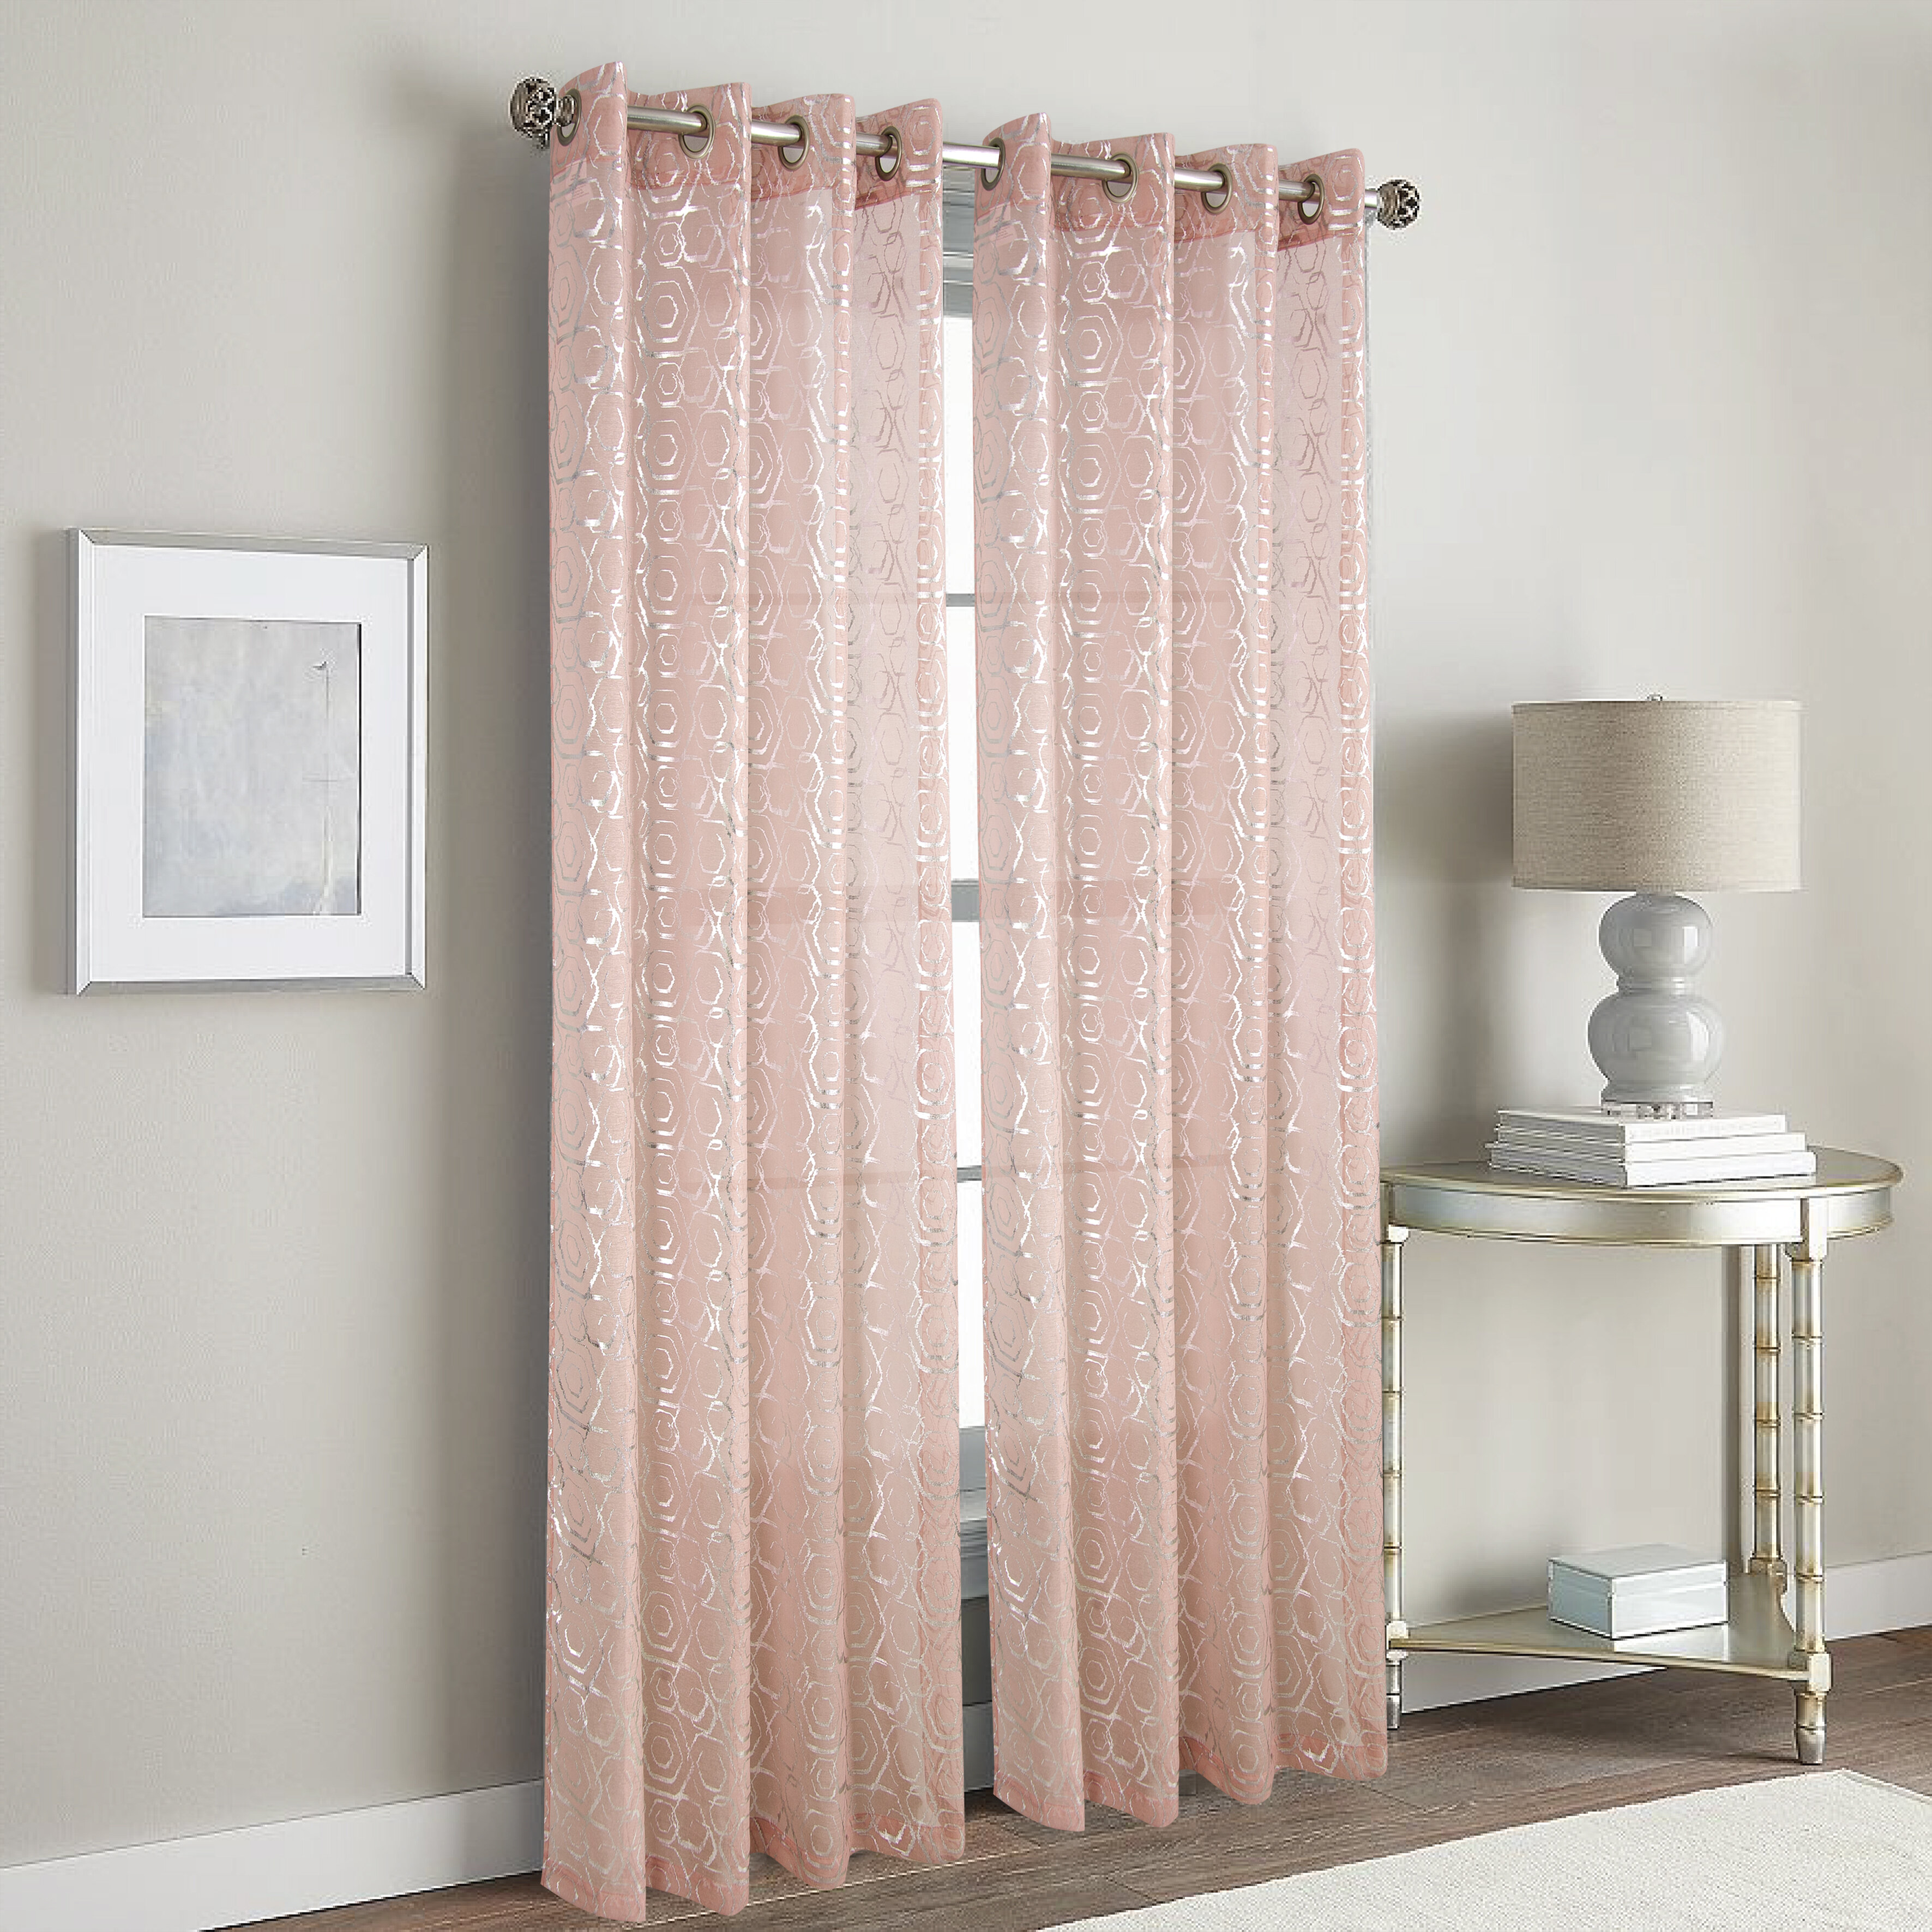 Everly Quinn Hardaway Metallic Geometric Semi Sheer Grommet Single Curtain Panel Wayfair